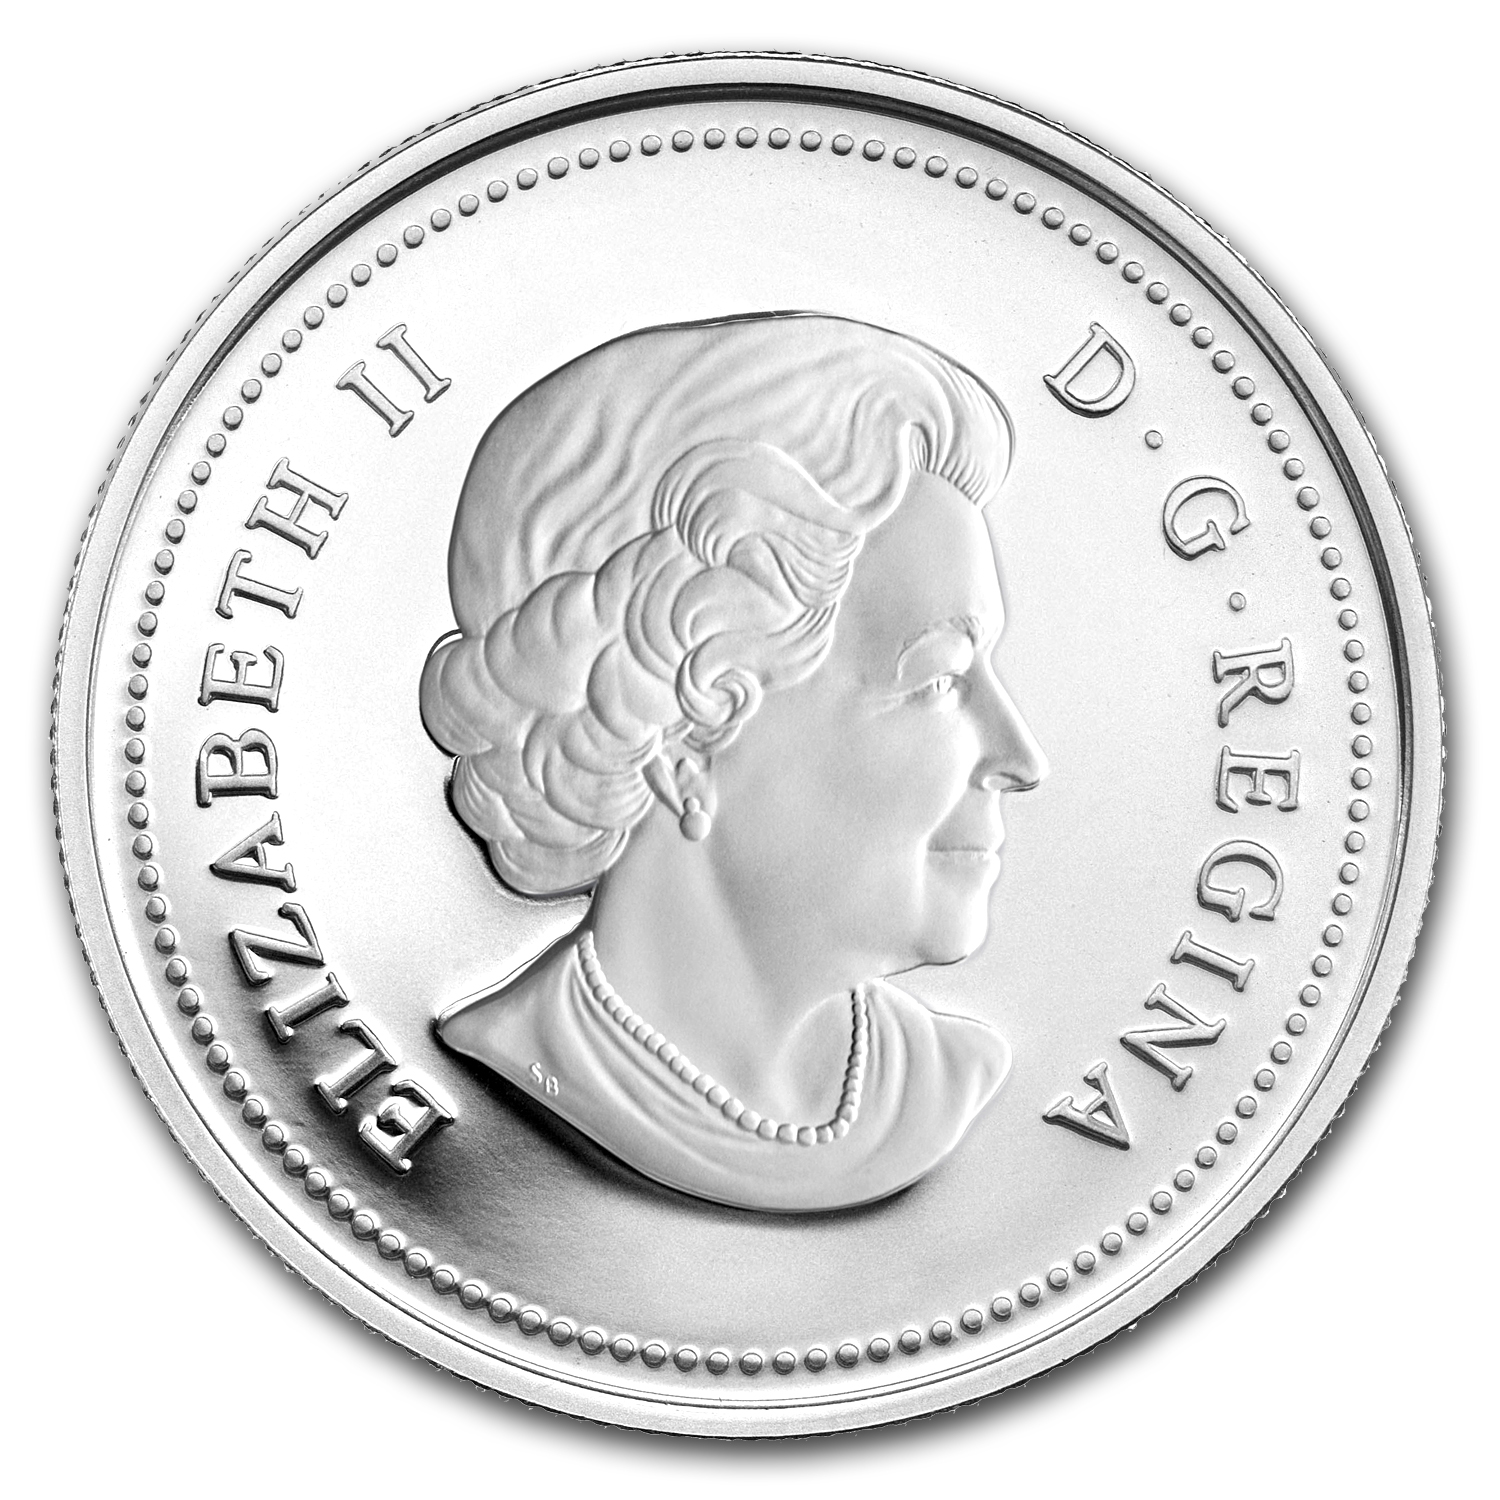 2012 1 oz Silver Canadian $15 Maple of Good Fortune (w/Hologram)